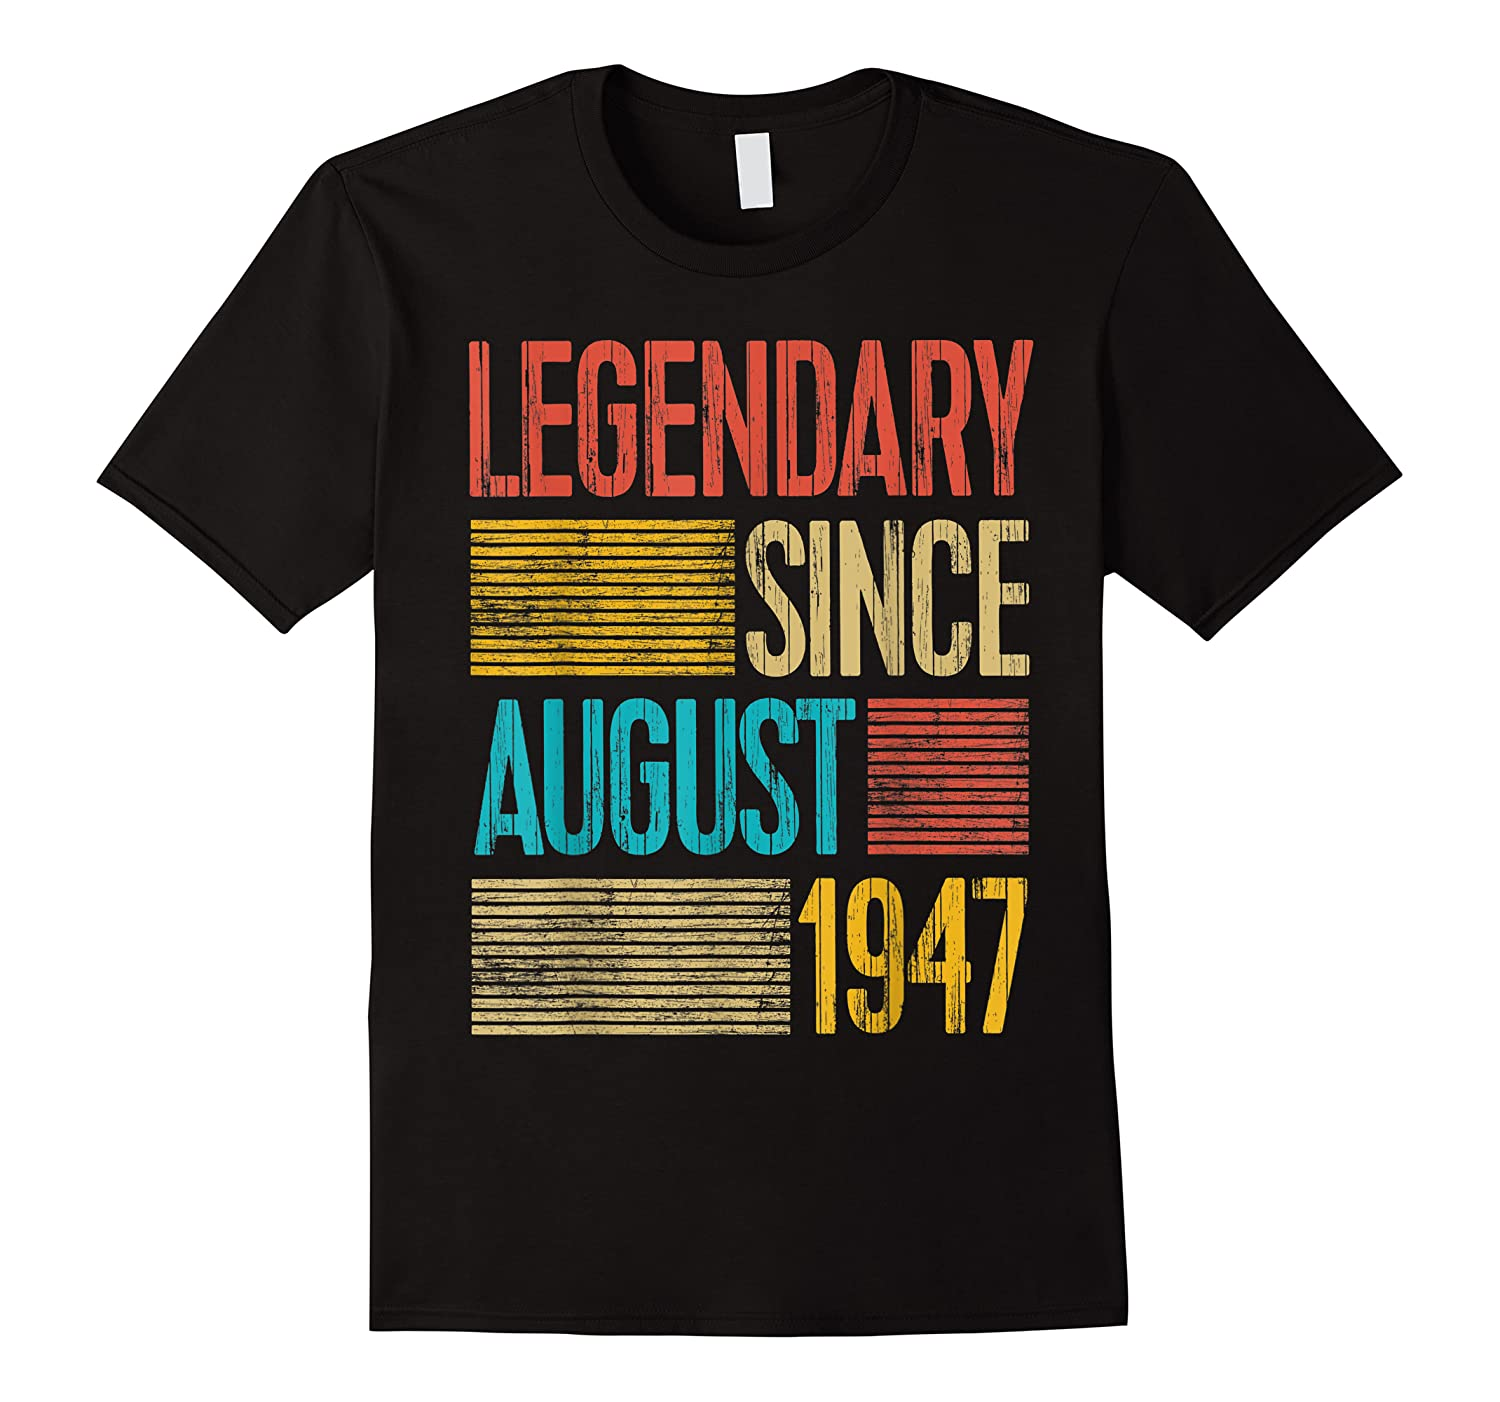 72nd Birthday Gifts Legendary Since August 1947 Shirts